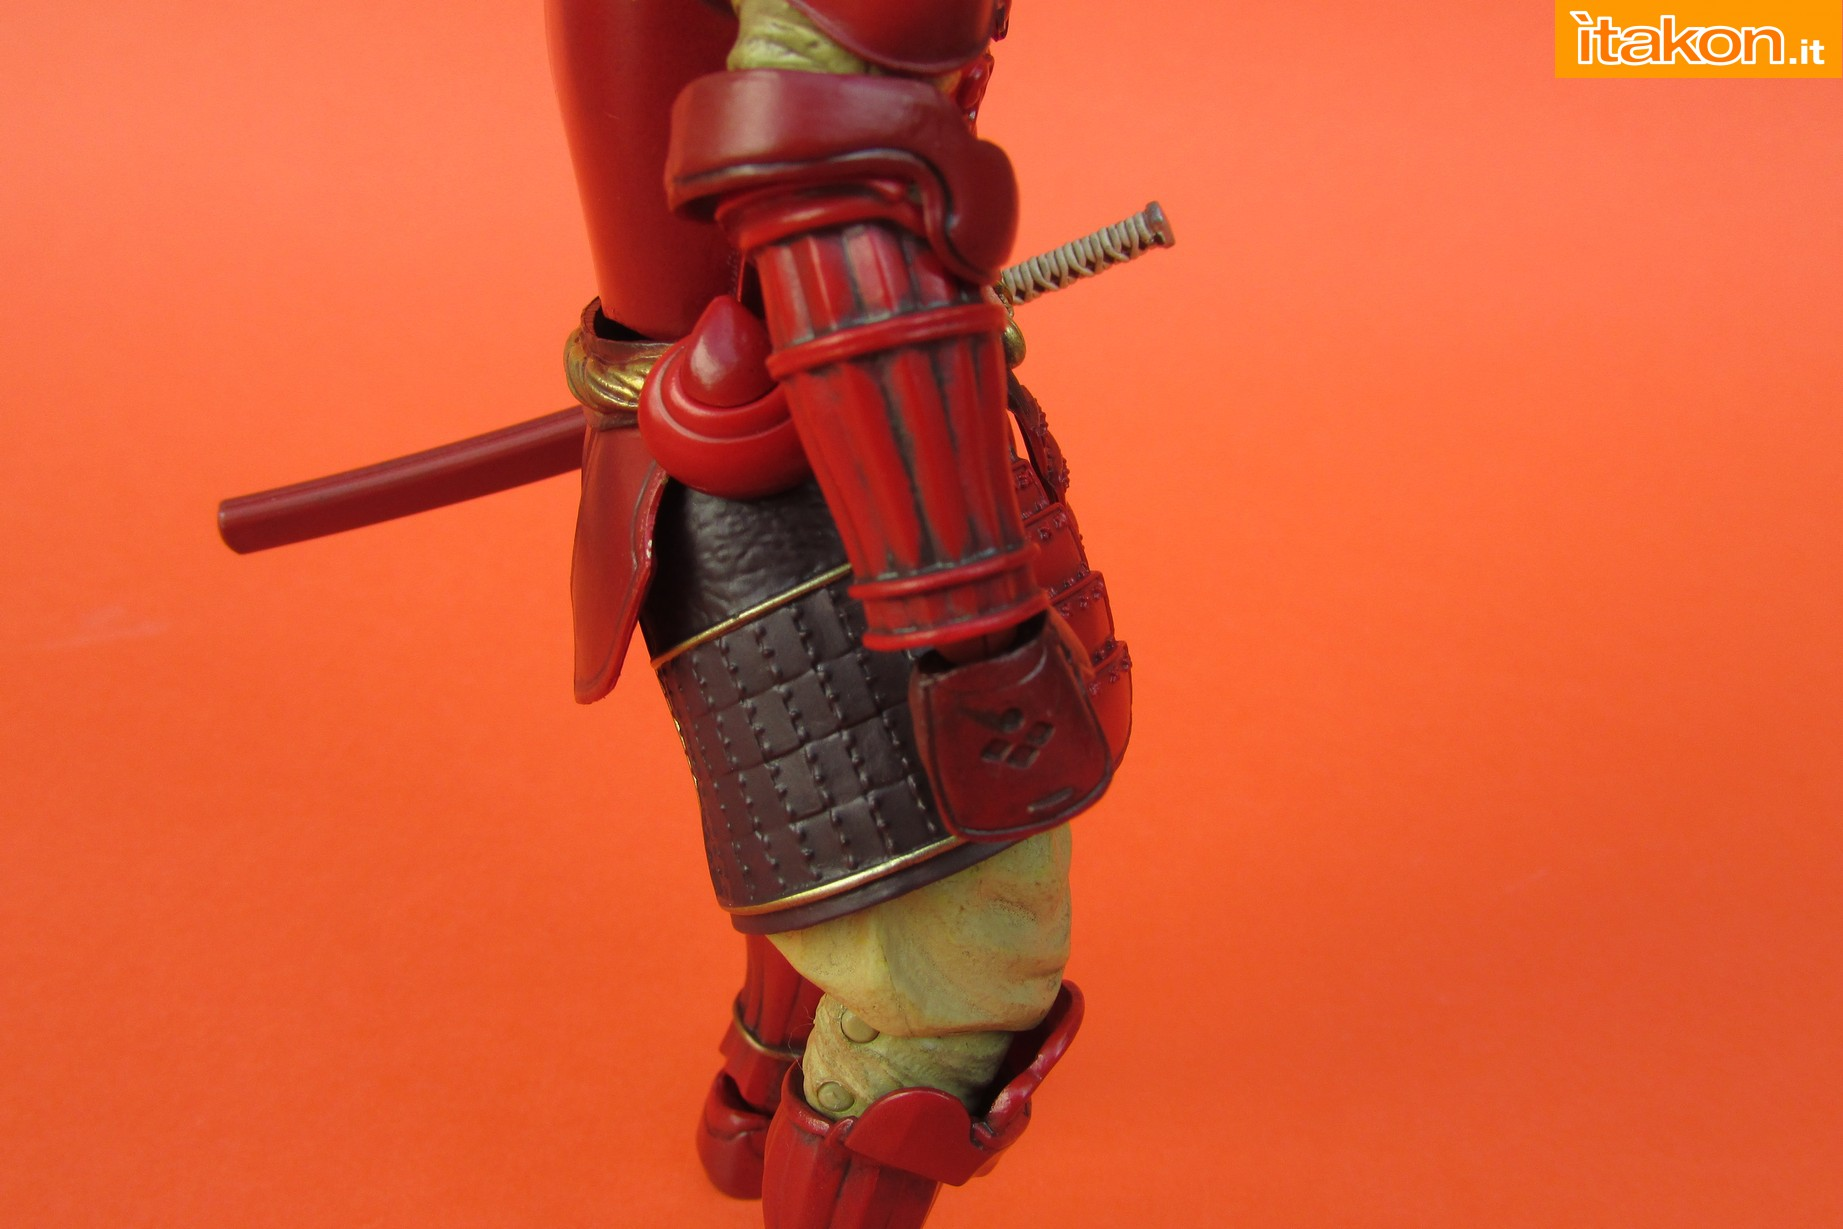 Link a Marvel Comics Koutetsu Samurai Iron Man Mark 3 Meishou MANGA REALIZATION review Bandai Itakon.it26